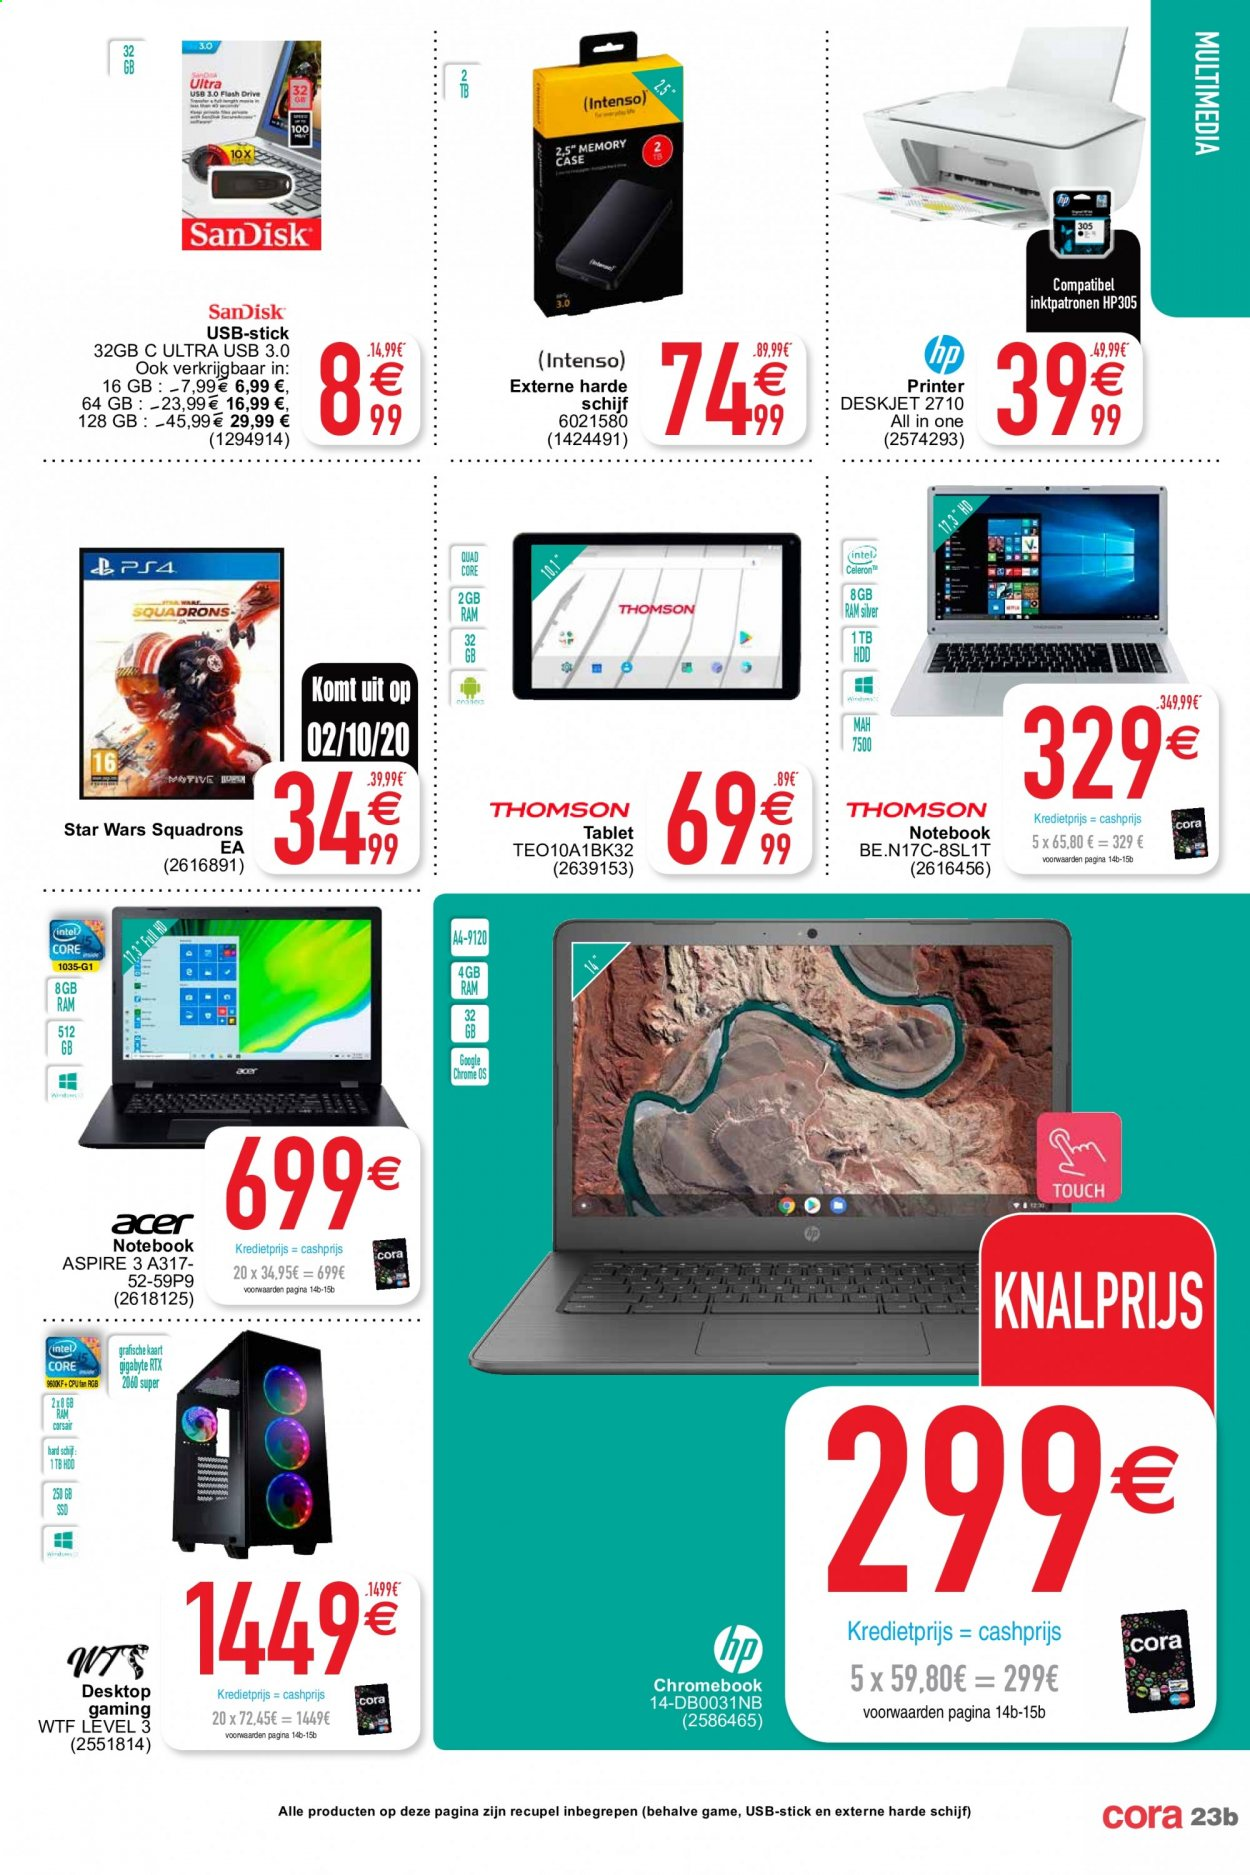 Catalogue Cora - 29.9.2020 - 12.10.2020 - Produits soldés - google, hdd, hp, usb, tablet, quad, mah, game. Page 23.